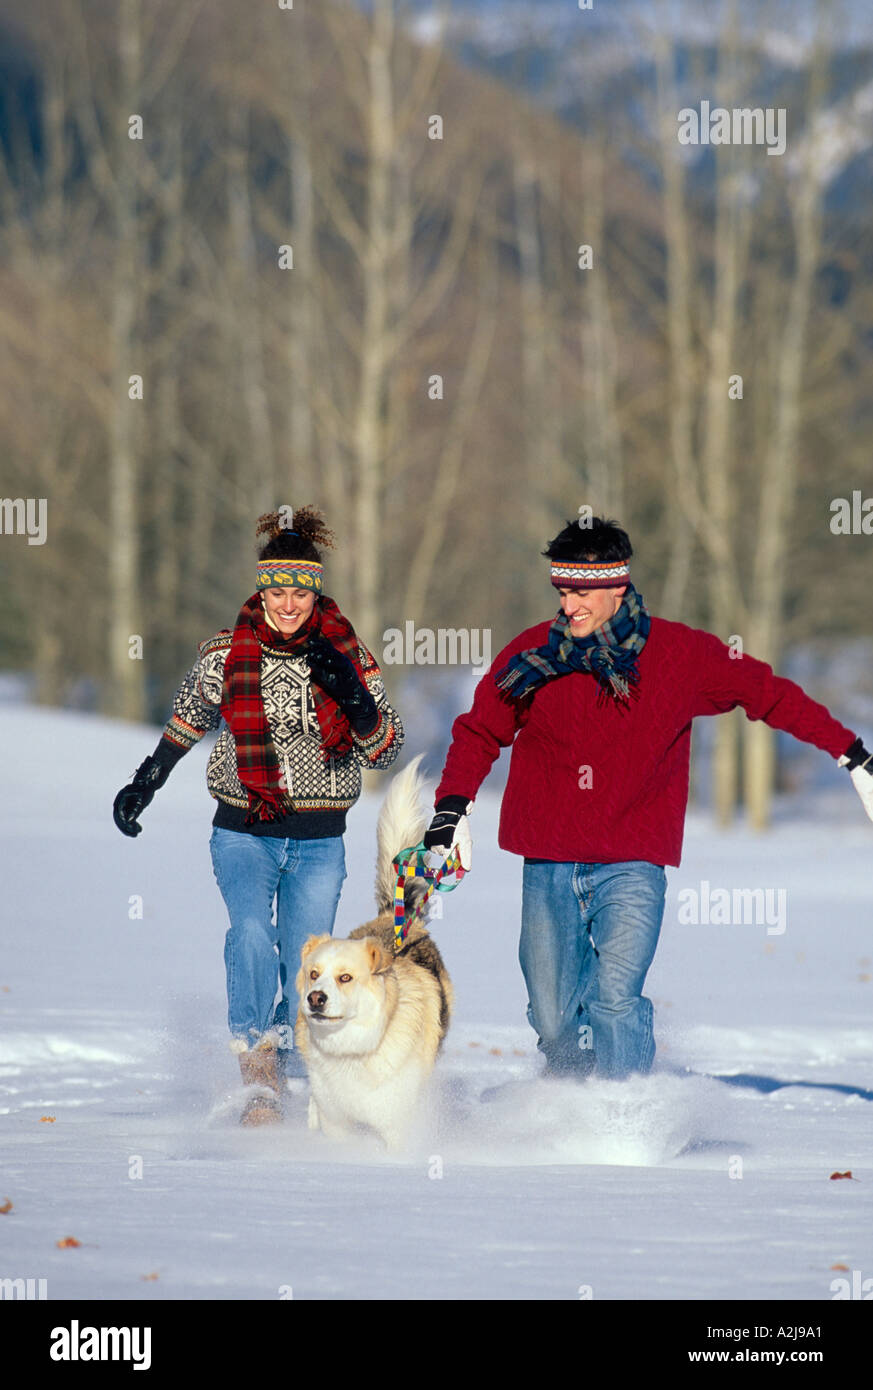 A man and a woman run through a snowy field with their dog - Stock Image